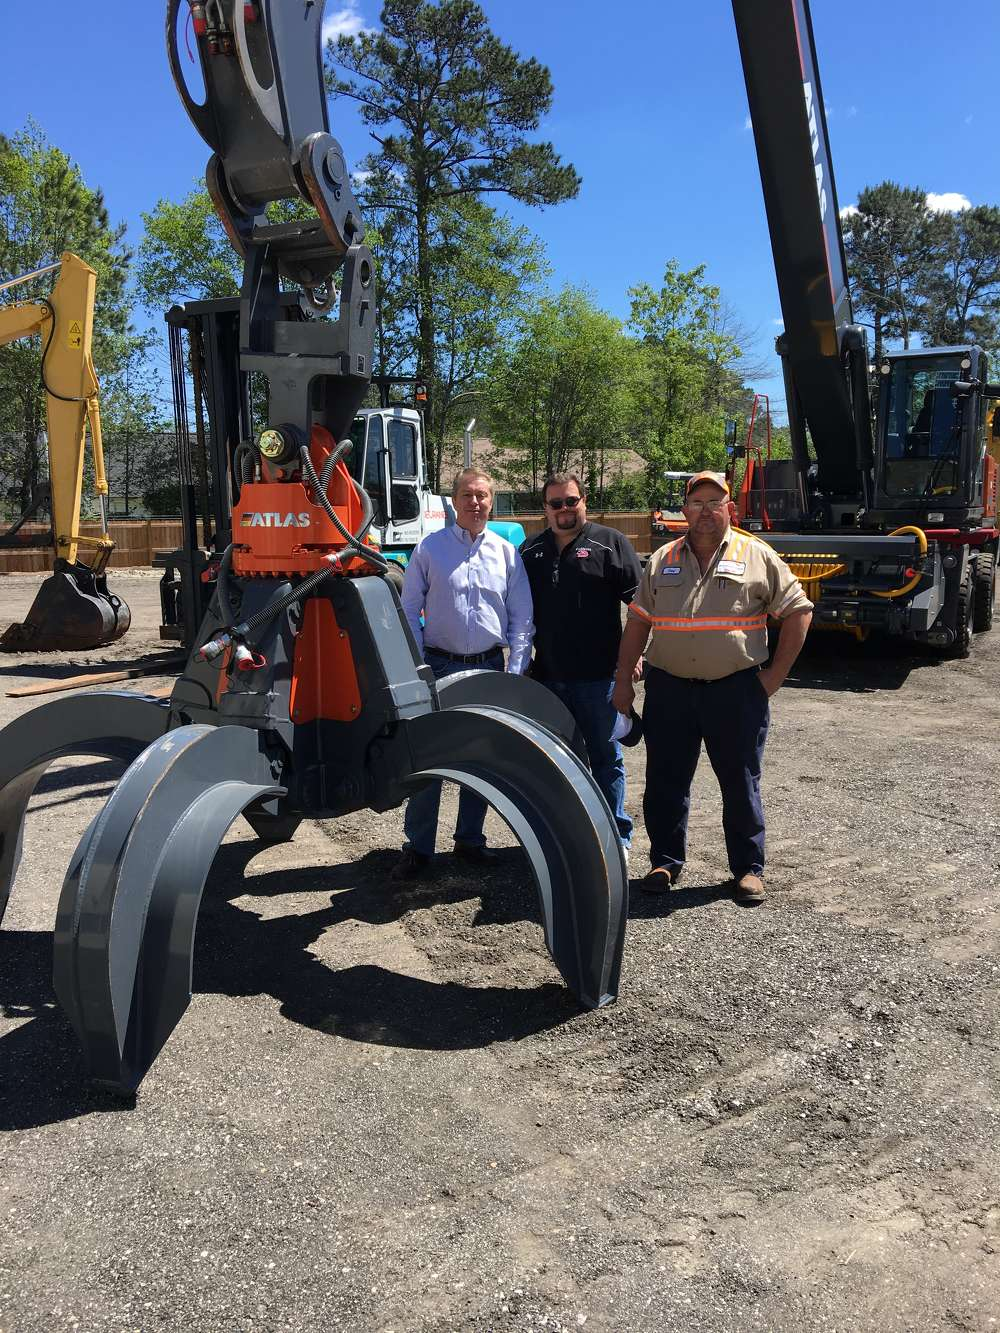 Larry Tracy, Daryne Wall and Earl Thurlow, all of Kinder Morgan Bulk Terminal in Huger, S.C., look over the Atlas 350 material handler.